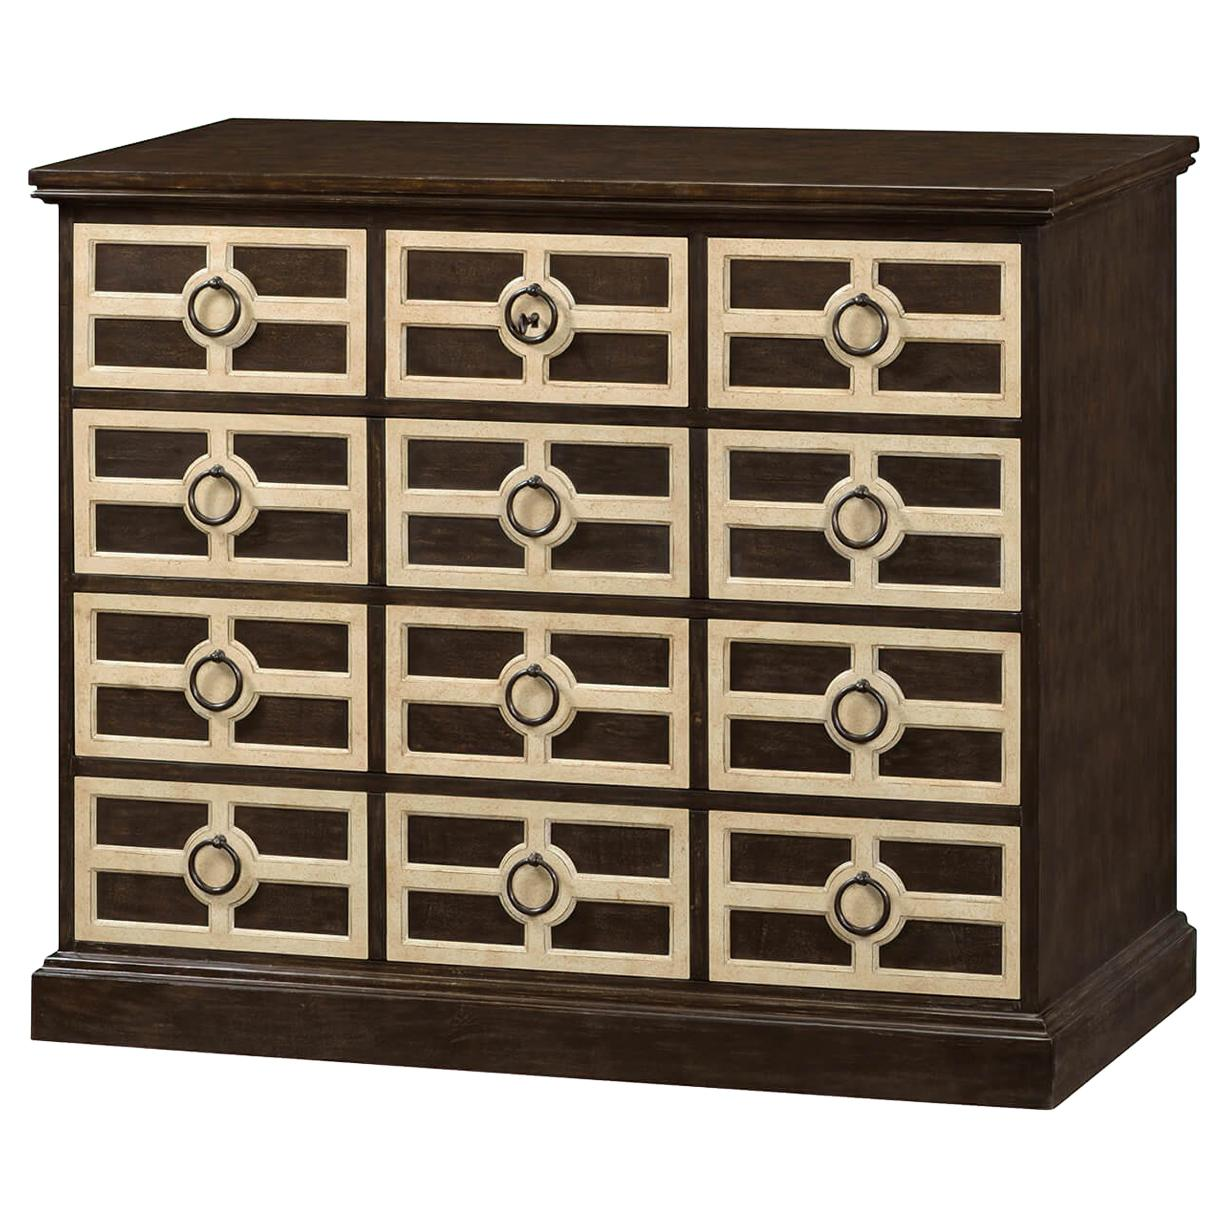 Moroccan Chest of Drawers